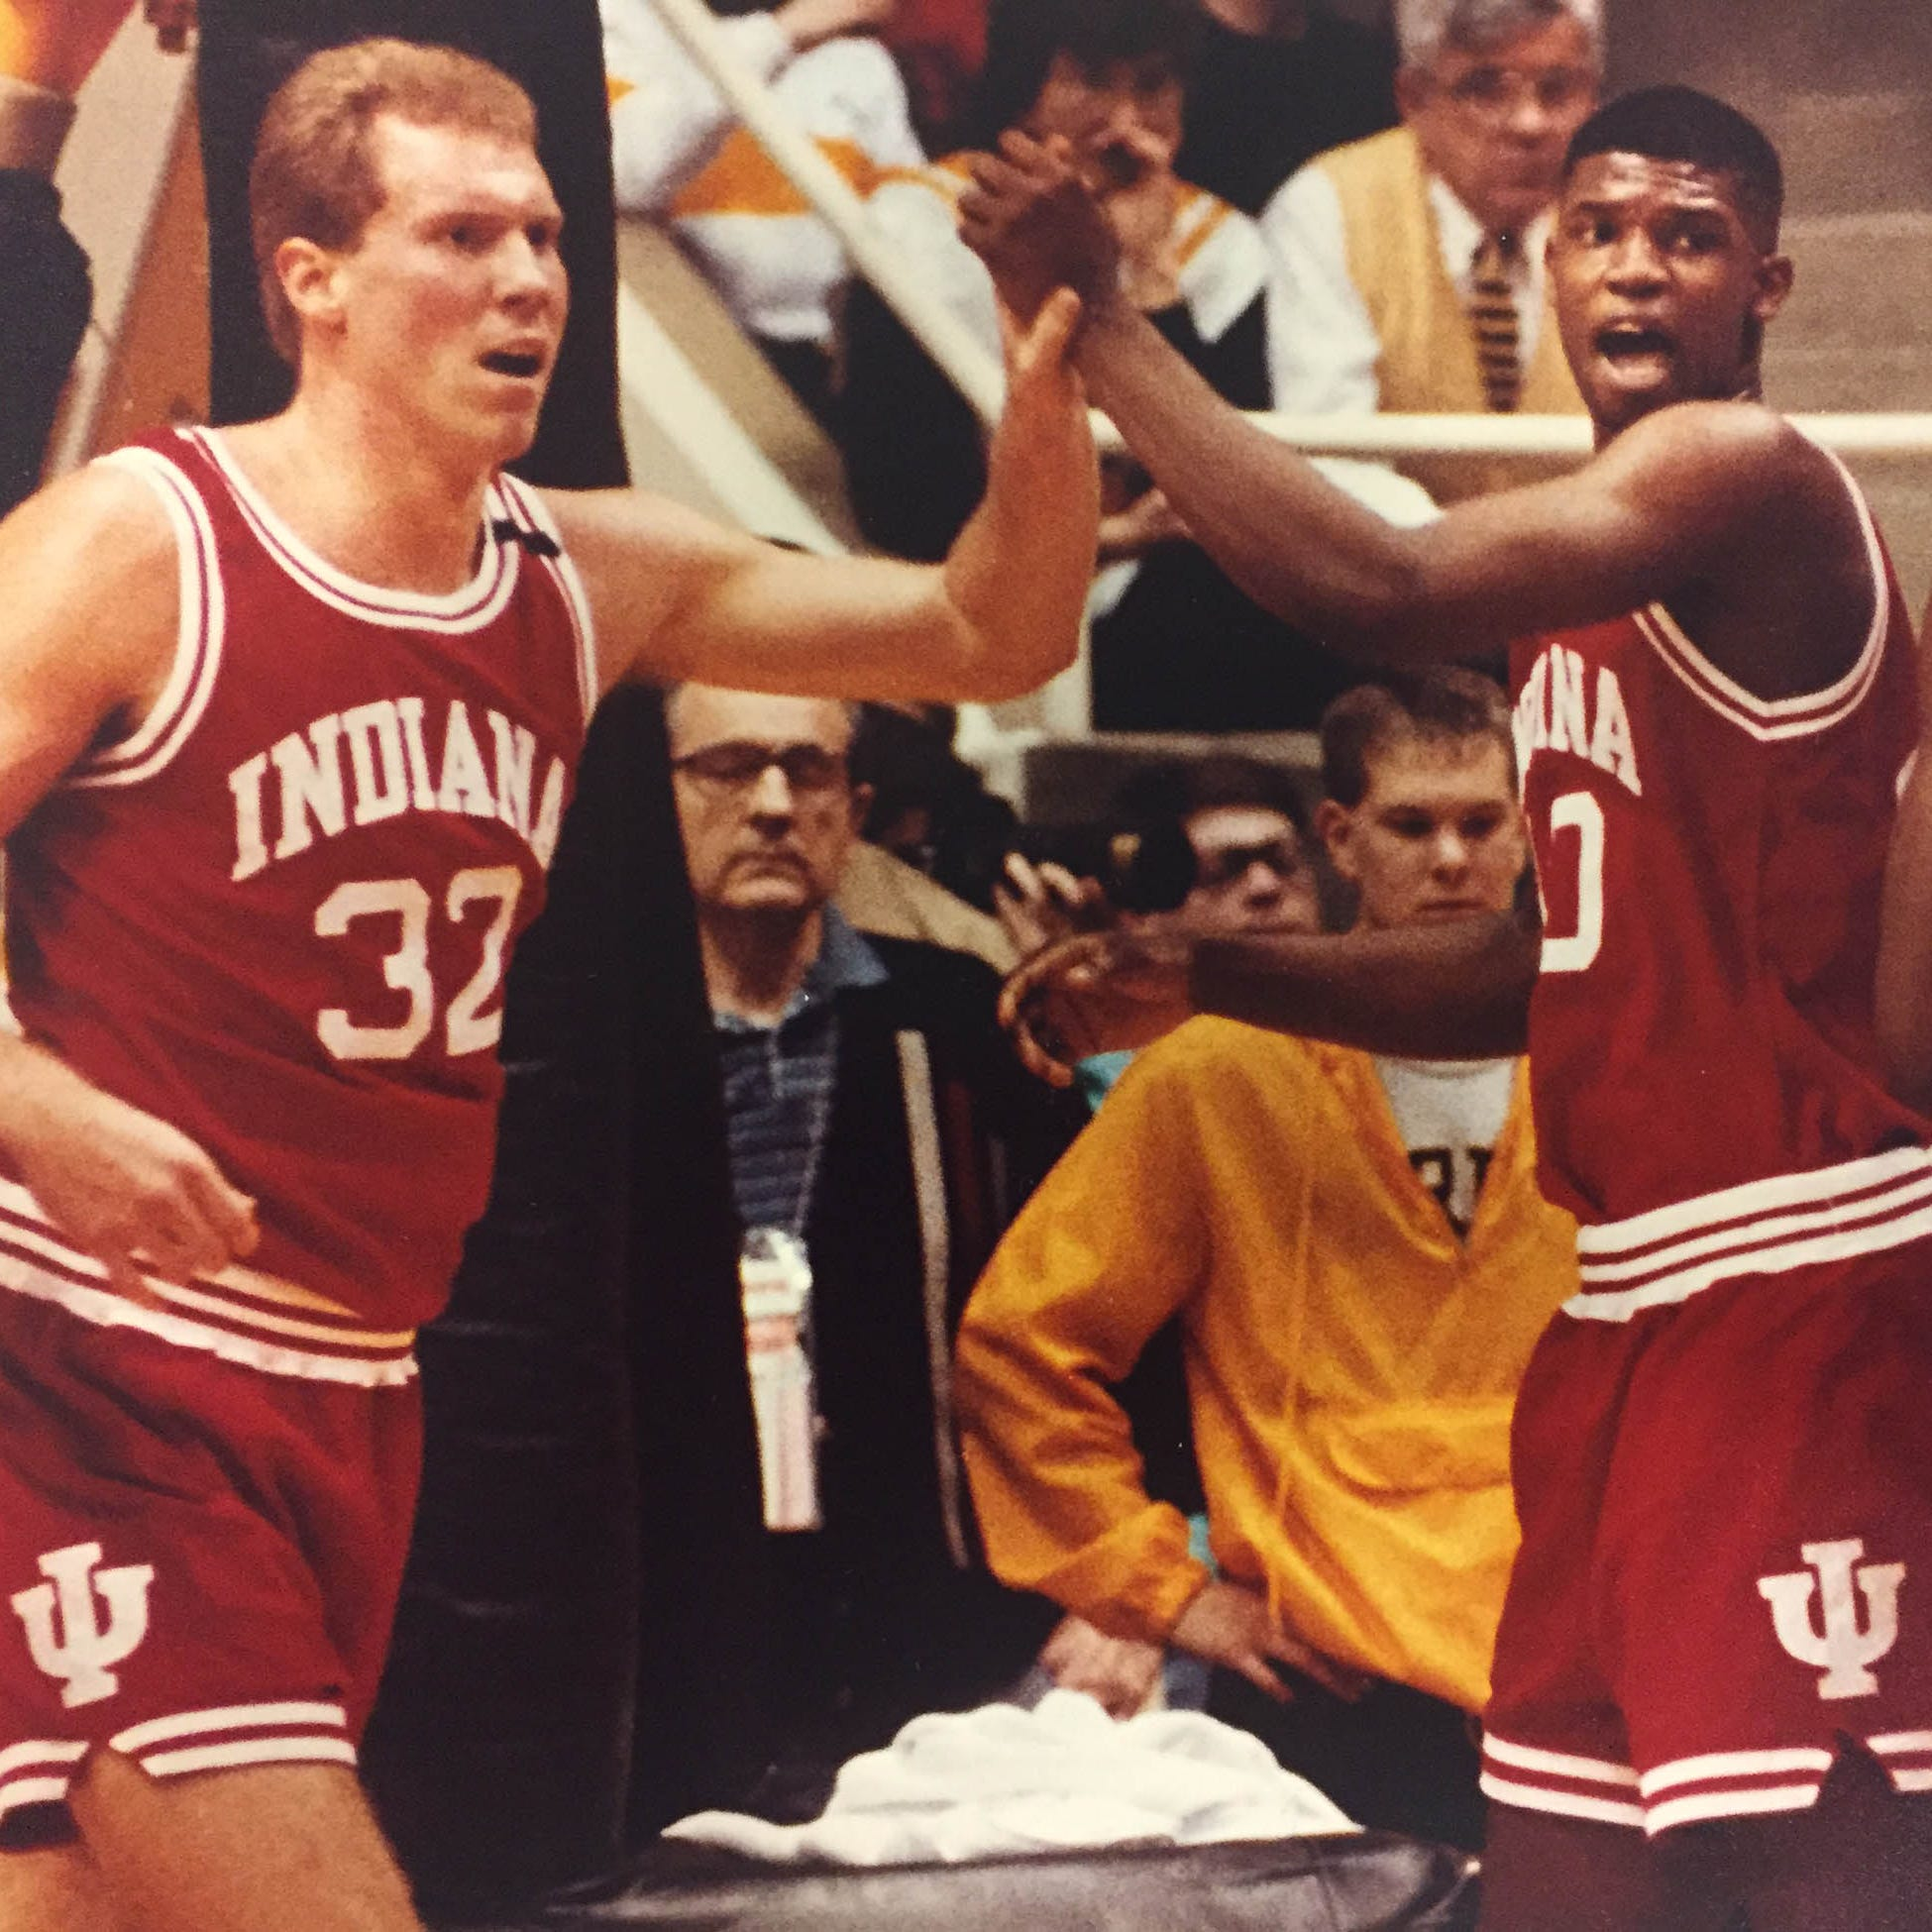 Preliminary cause of death for IU basketball's Eric Anderson revealed